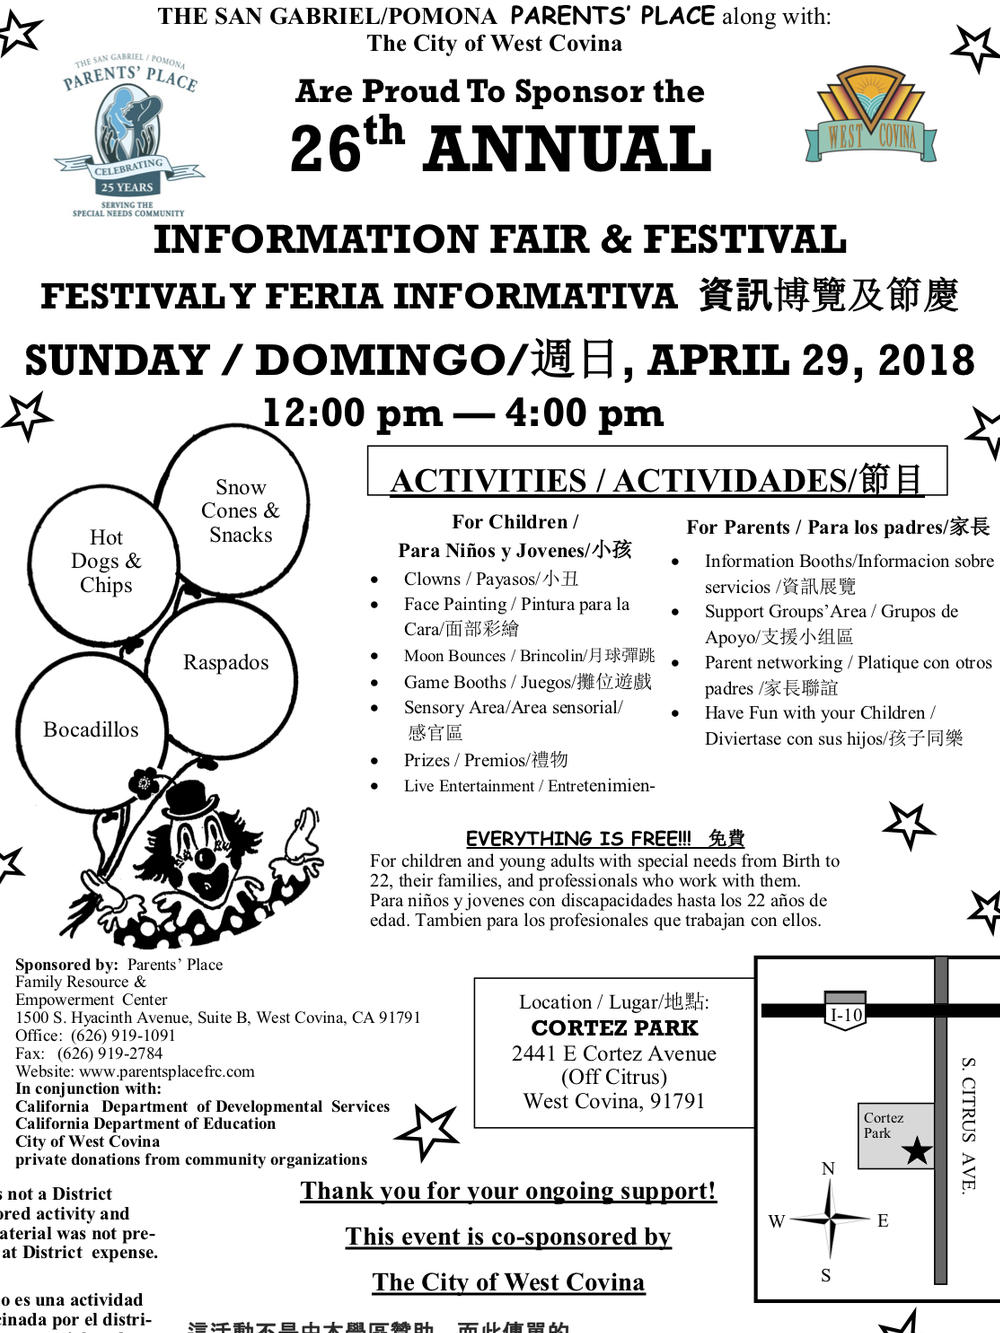 Information fair and festival